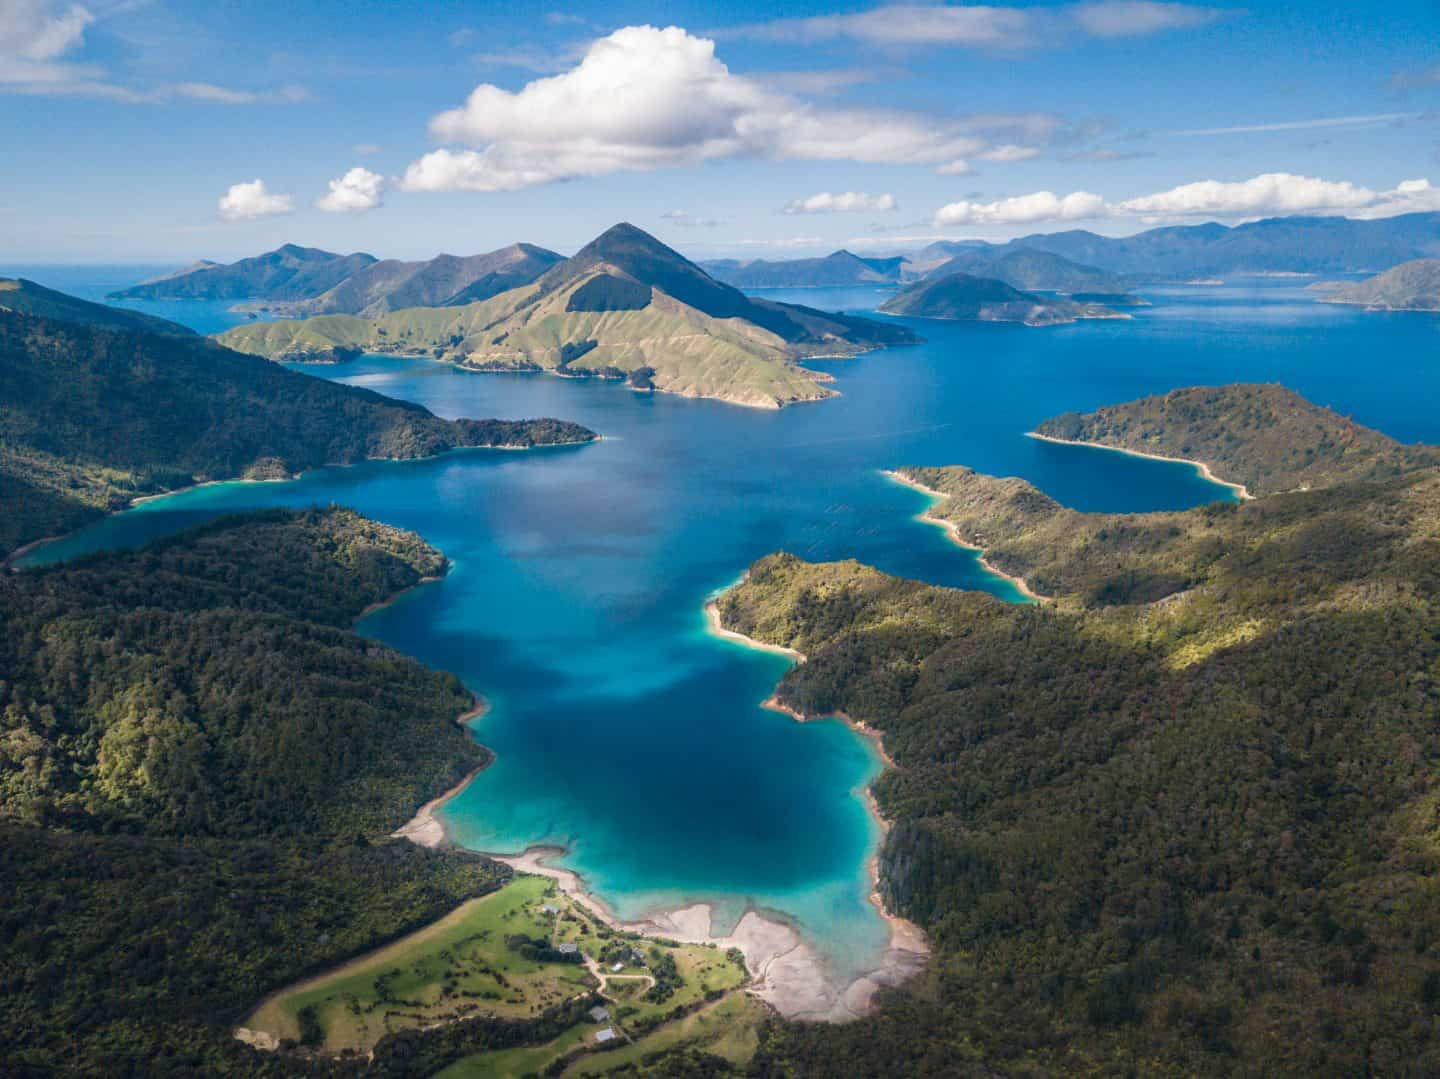 Incredible blue waters and lush greenery make the Pelorus Sound in Marlborough exceptionally photogenic.